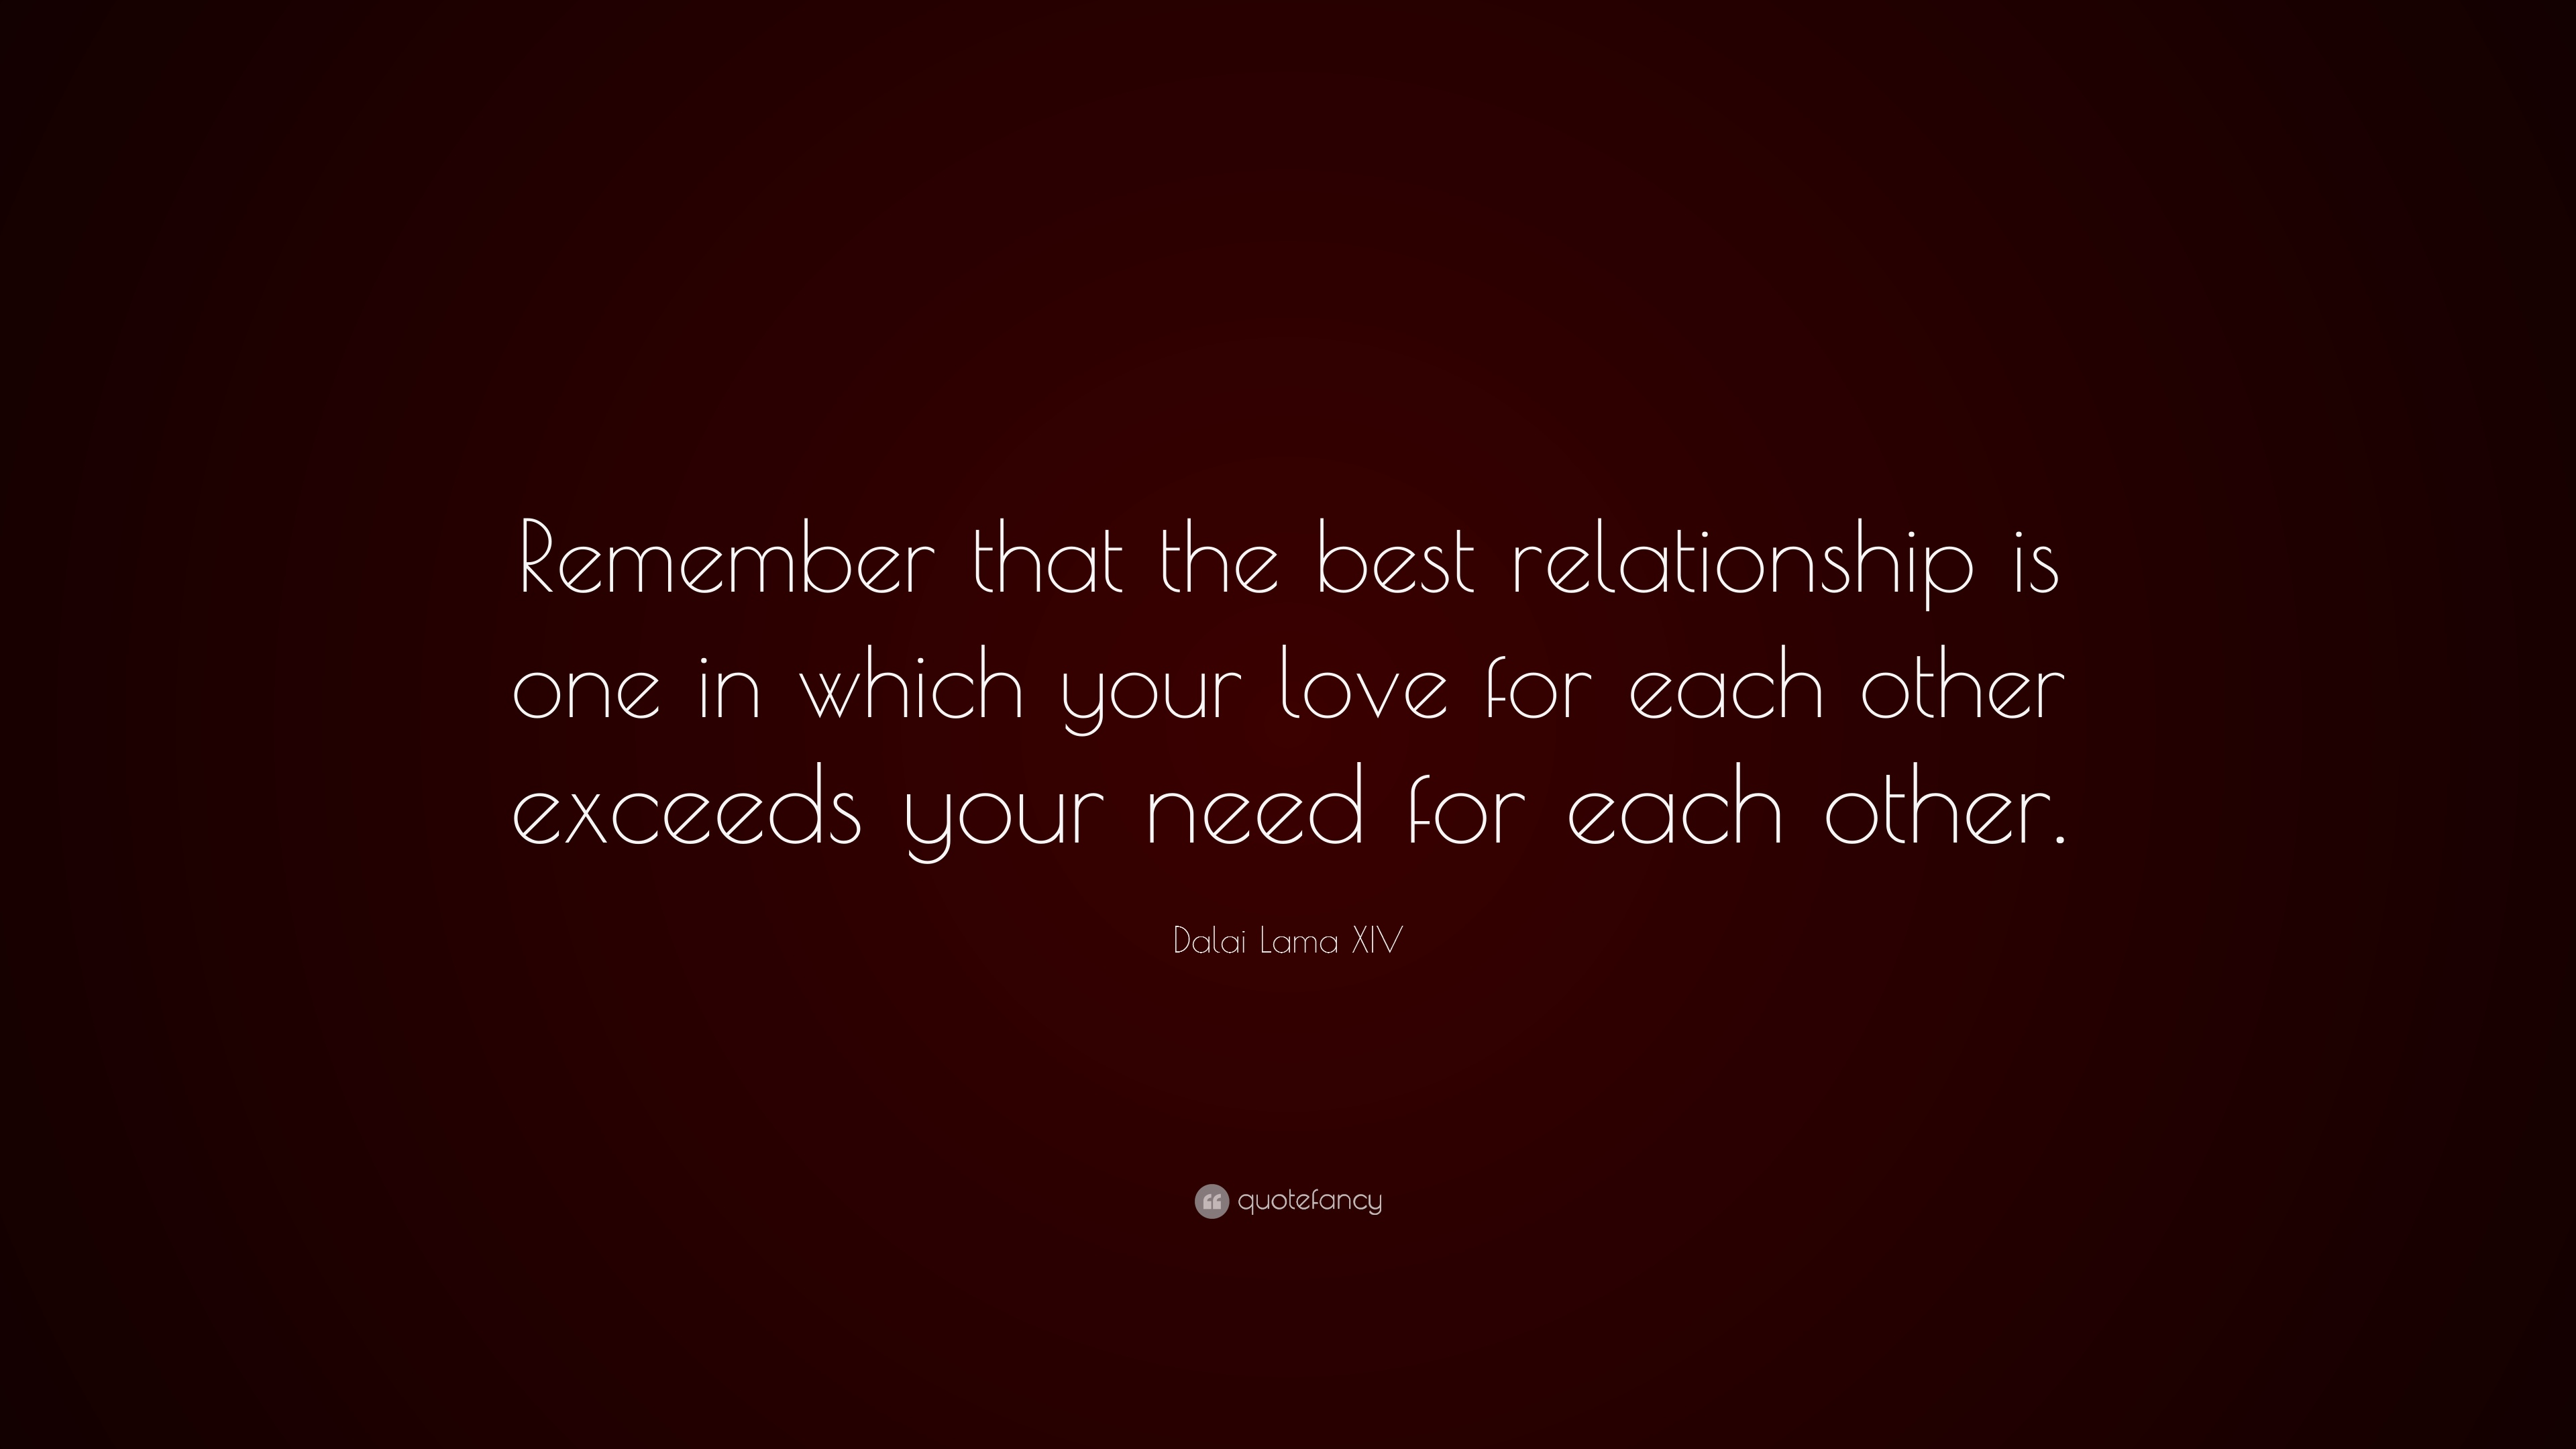 Best Relationship Quotes Relationship Quotes 57 Wallpapers  Quotefancy